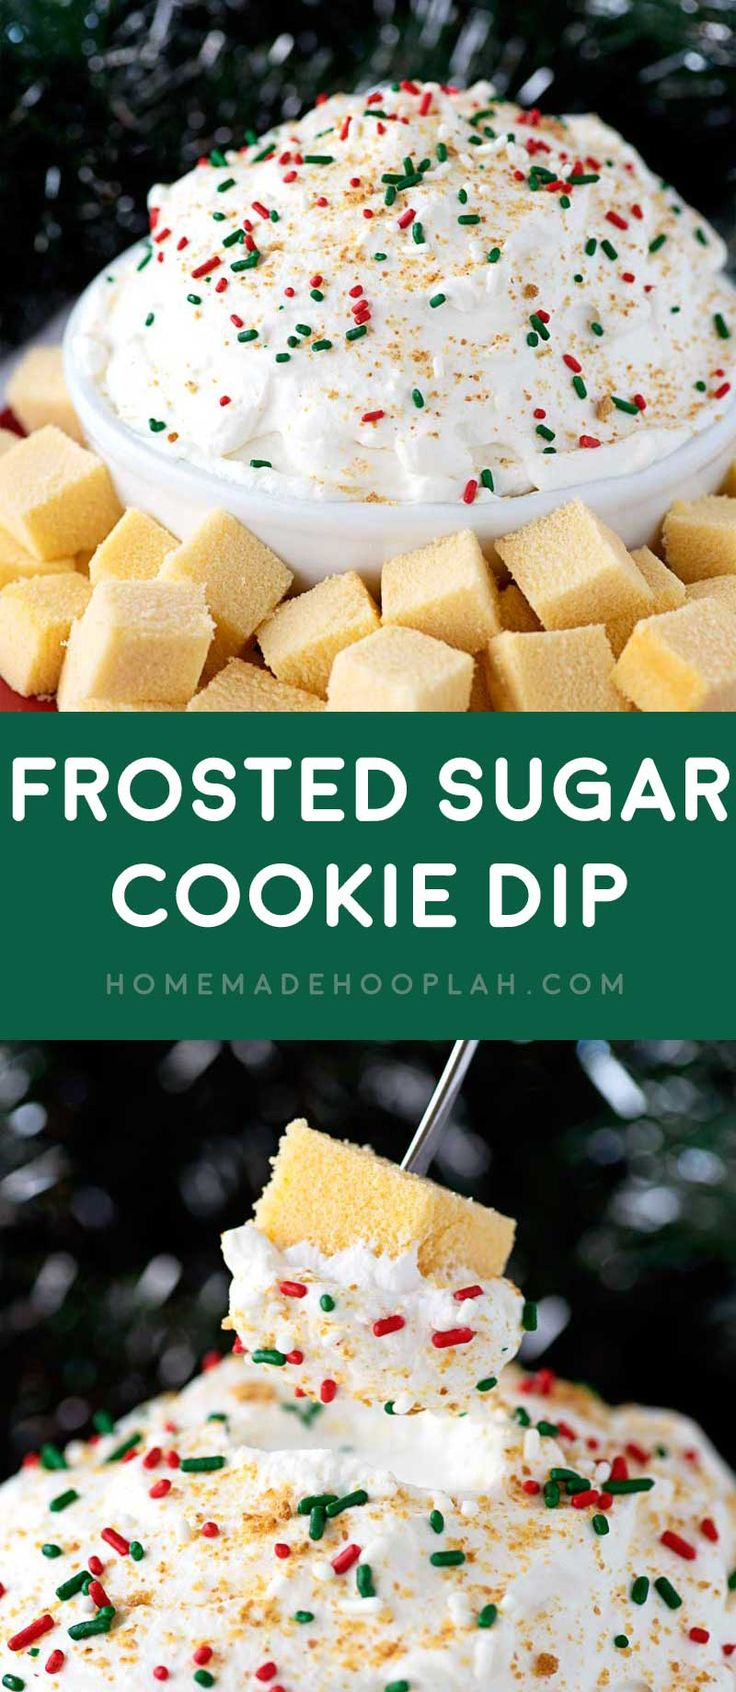 Frosted Sugar Cookie Dip! A fluffy dip made with International Delight Frosted Sugar Cookie Creamer and served fondue style with cubes of spongy pound cake.   HomemadeHooplah.com